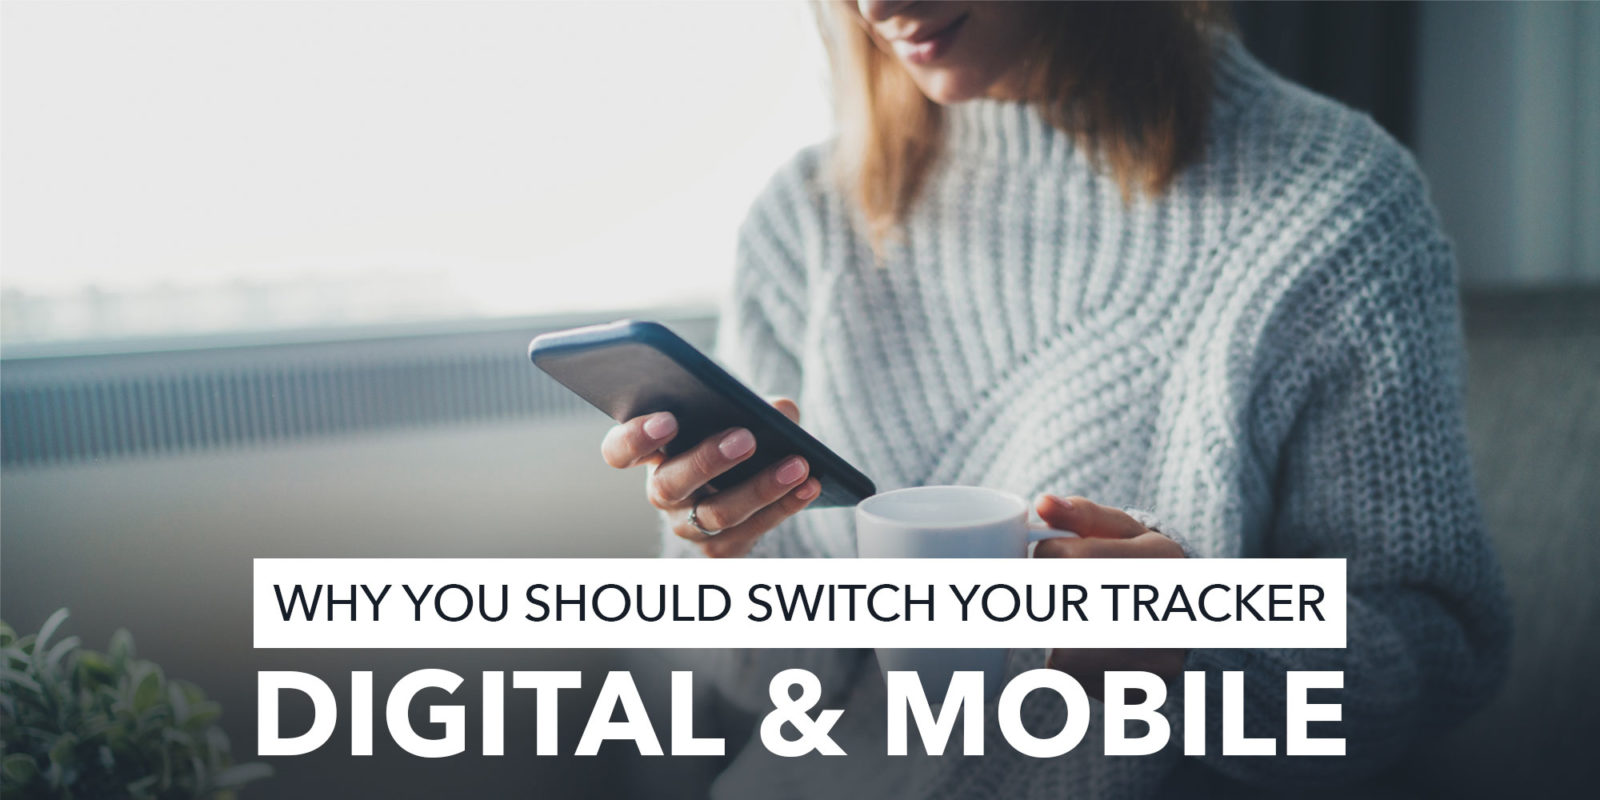 Why You Should Switch Your Tracker: Digital & Mobile